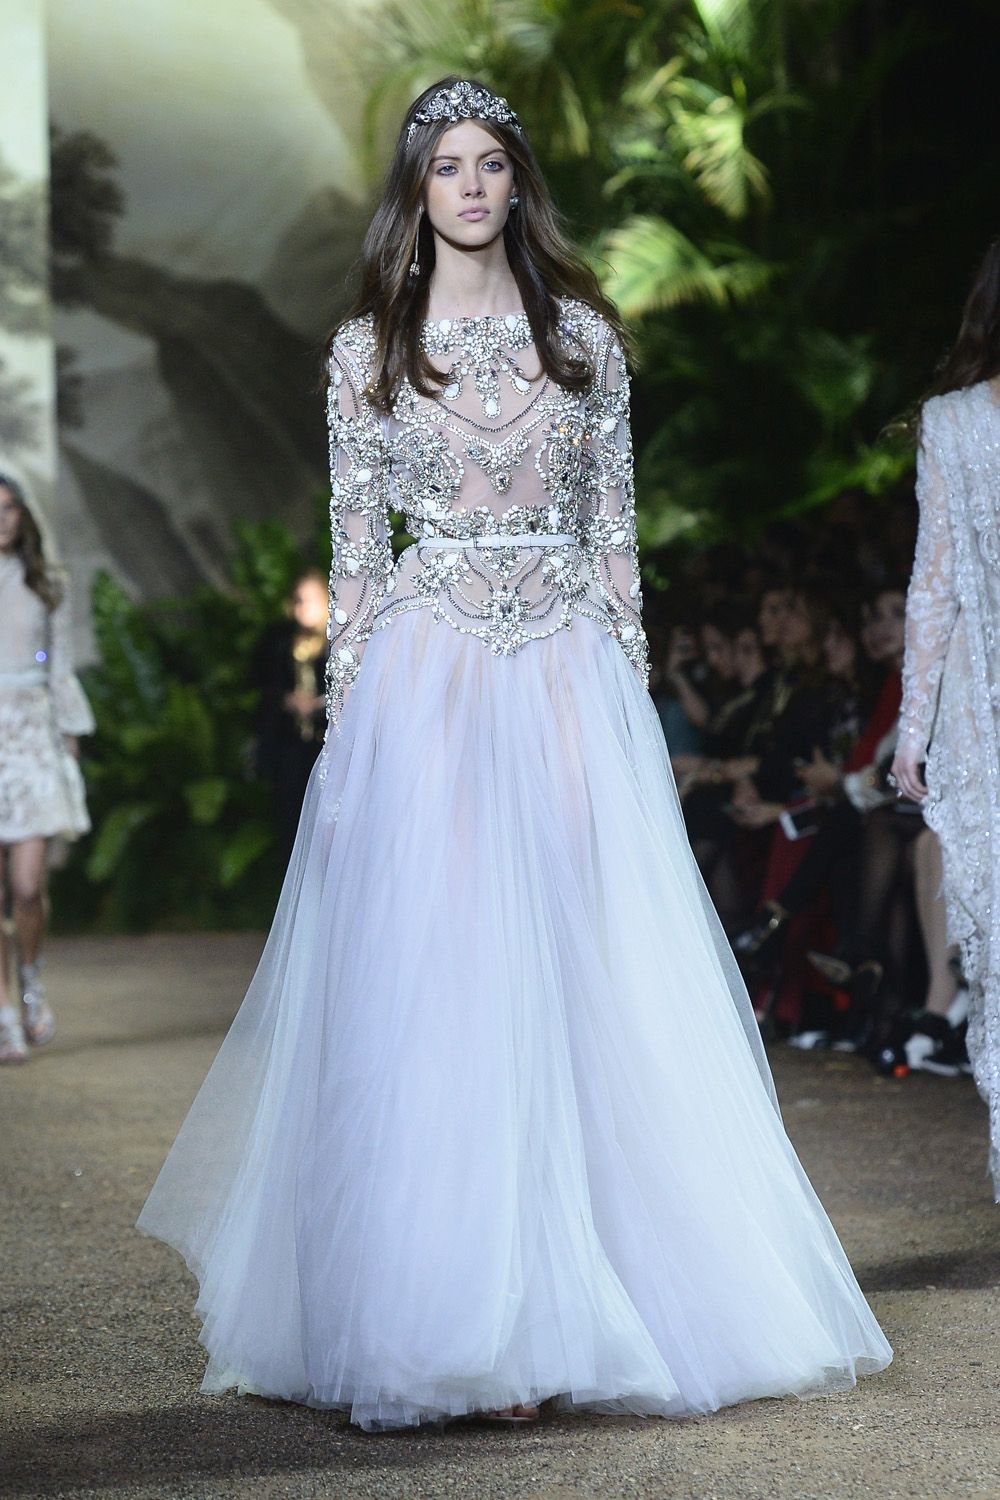 45 Fantasy Wedding Dresses That Will Make Your Heart Stop ...